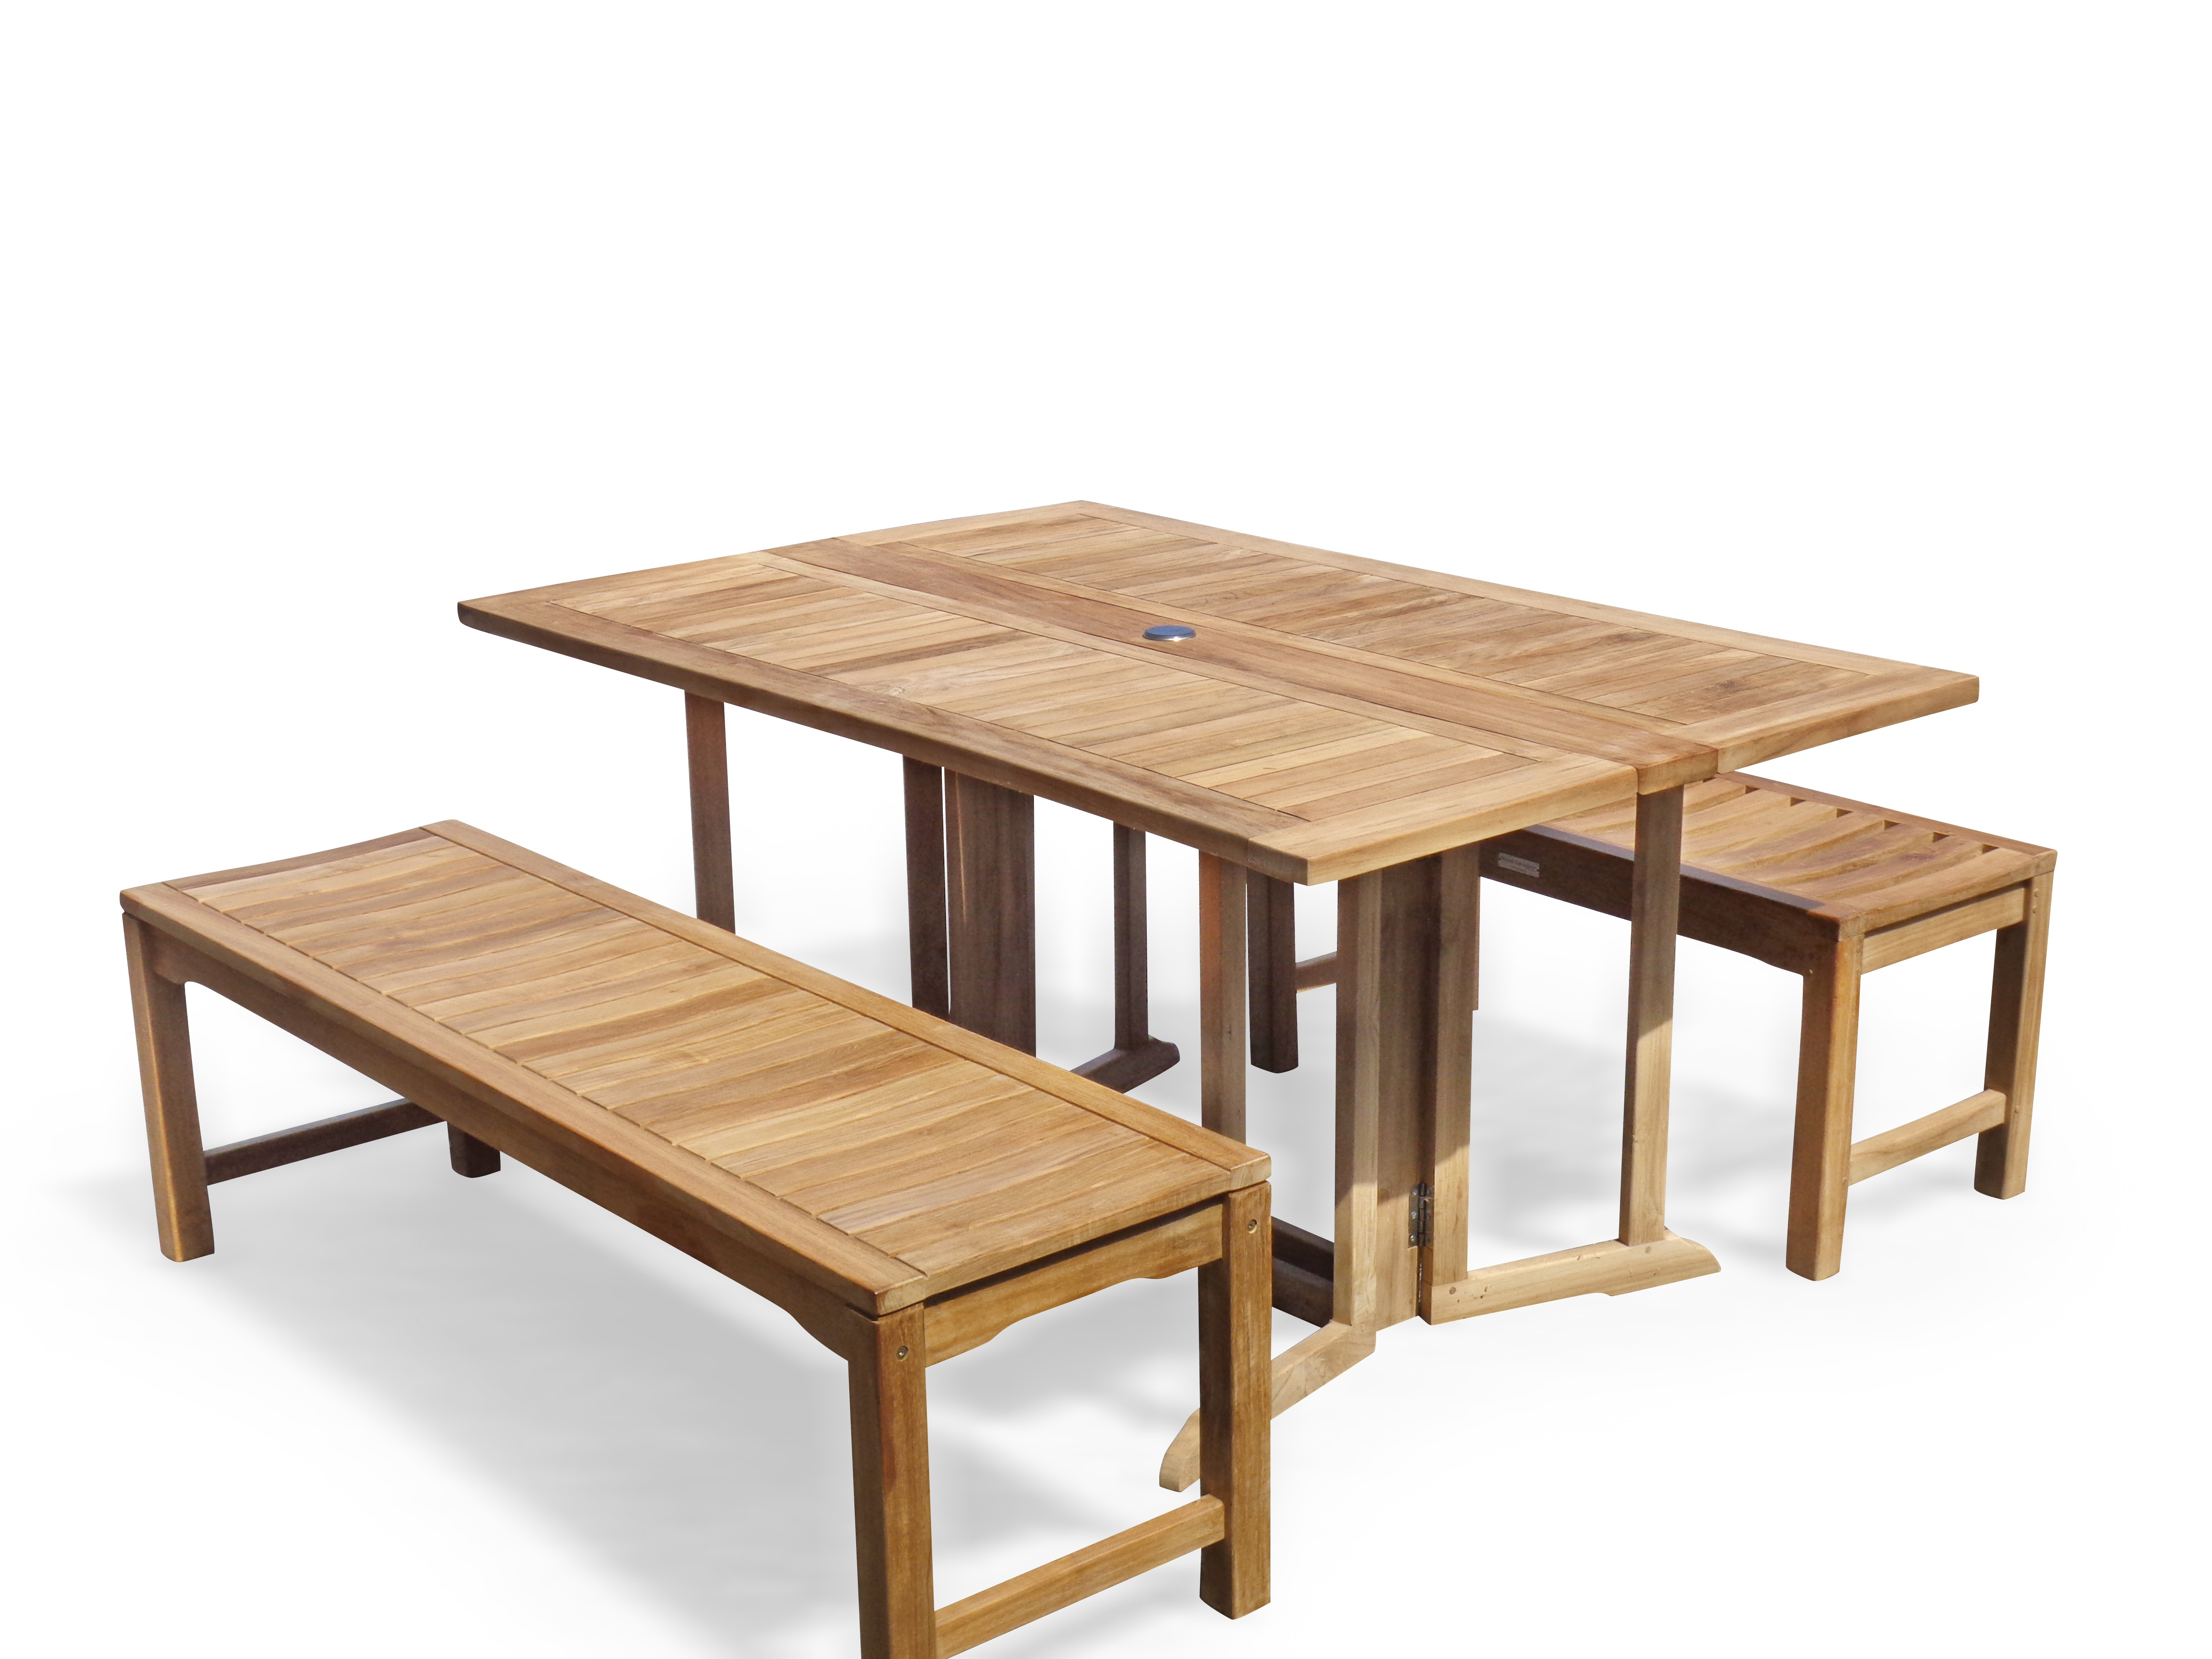 """Barcelona 59"""" x 39"""" Rectangular Drop Leaf Folding Teak Table W/two 59"""" Backless Benches...Seats 6 Adults"""